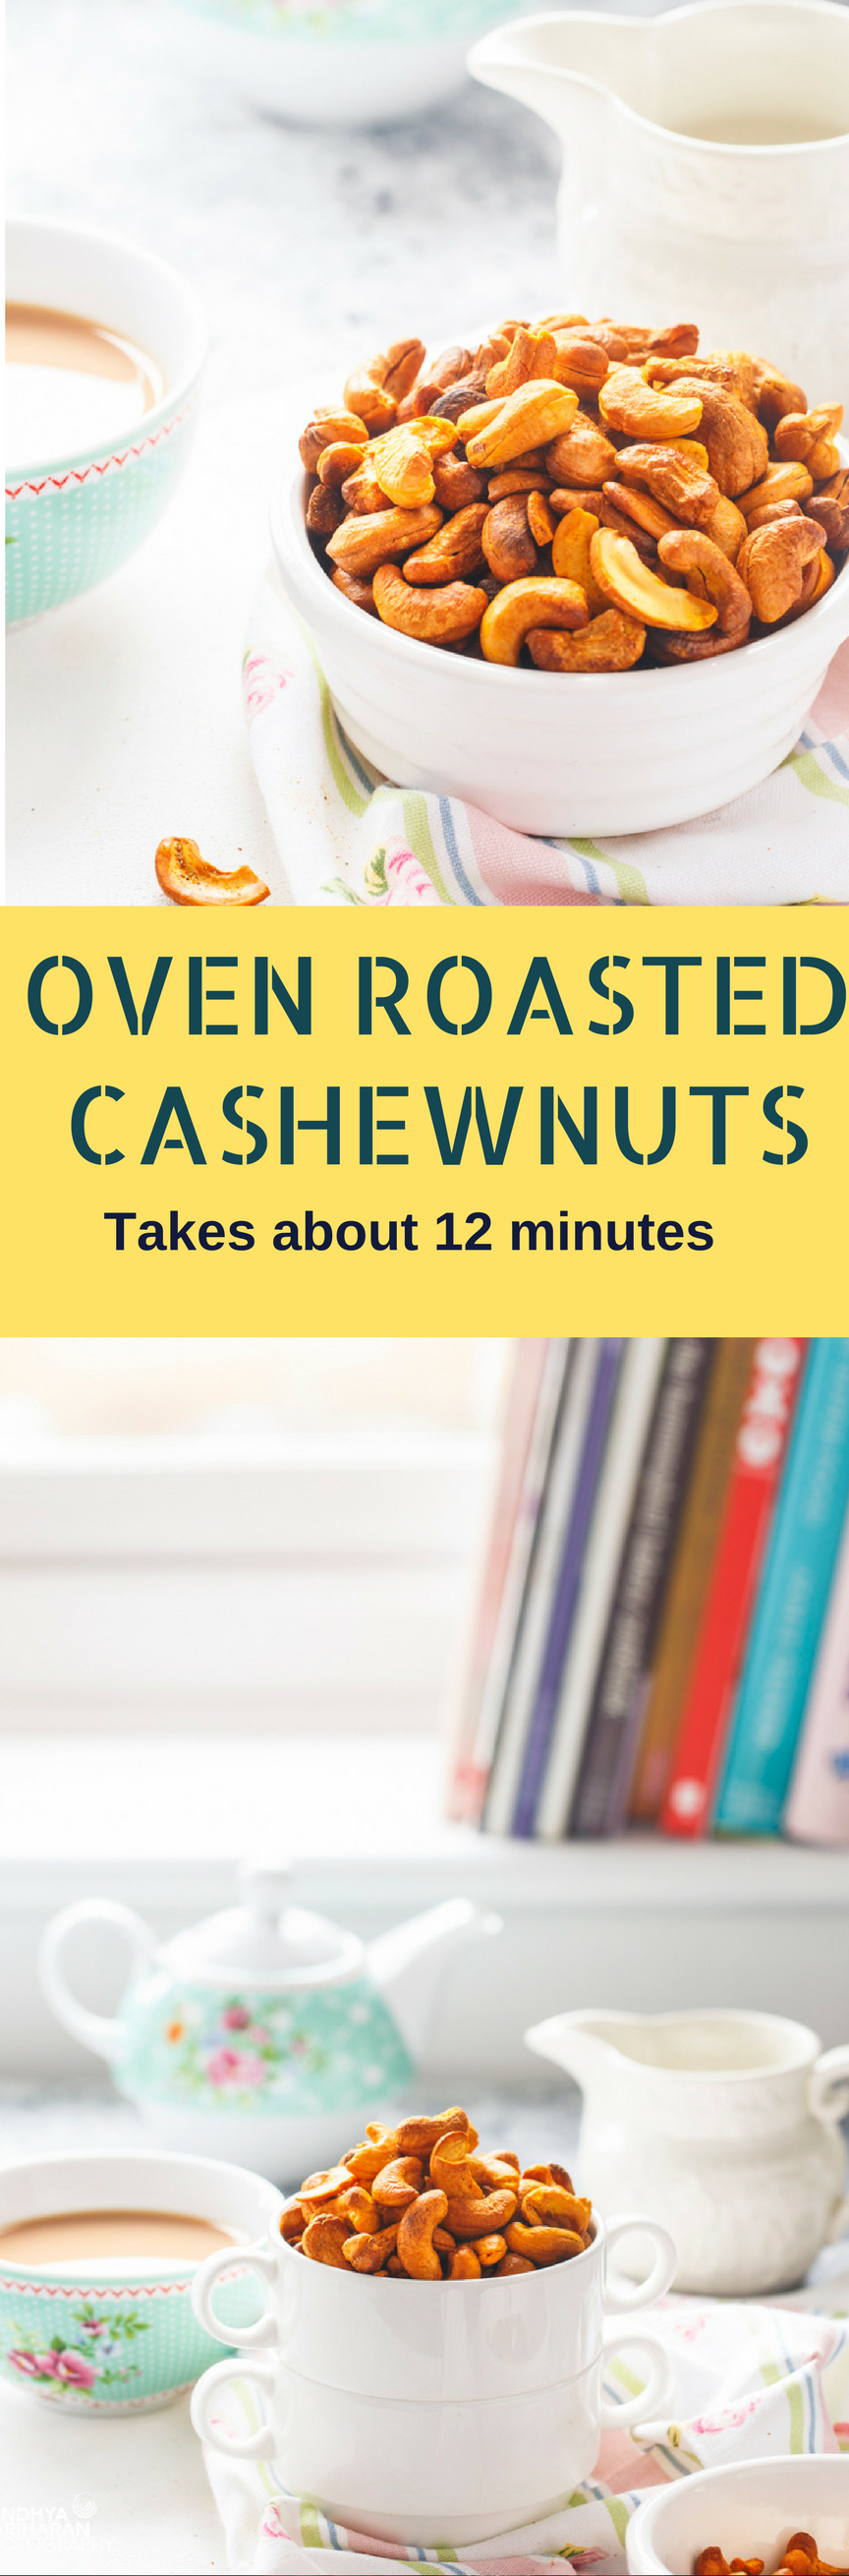 Spicy roasted cashew nuts recipe | easy oven roasted cashews